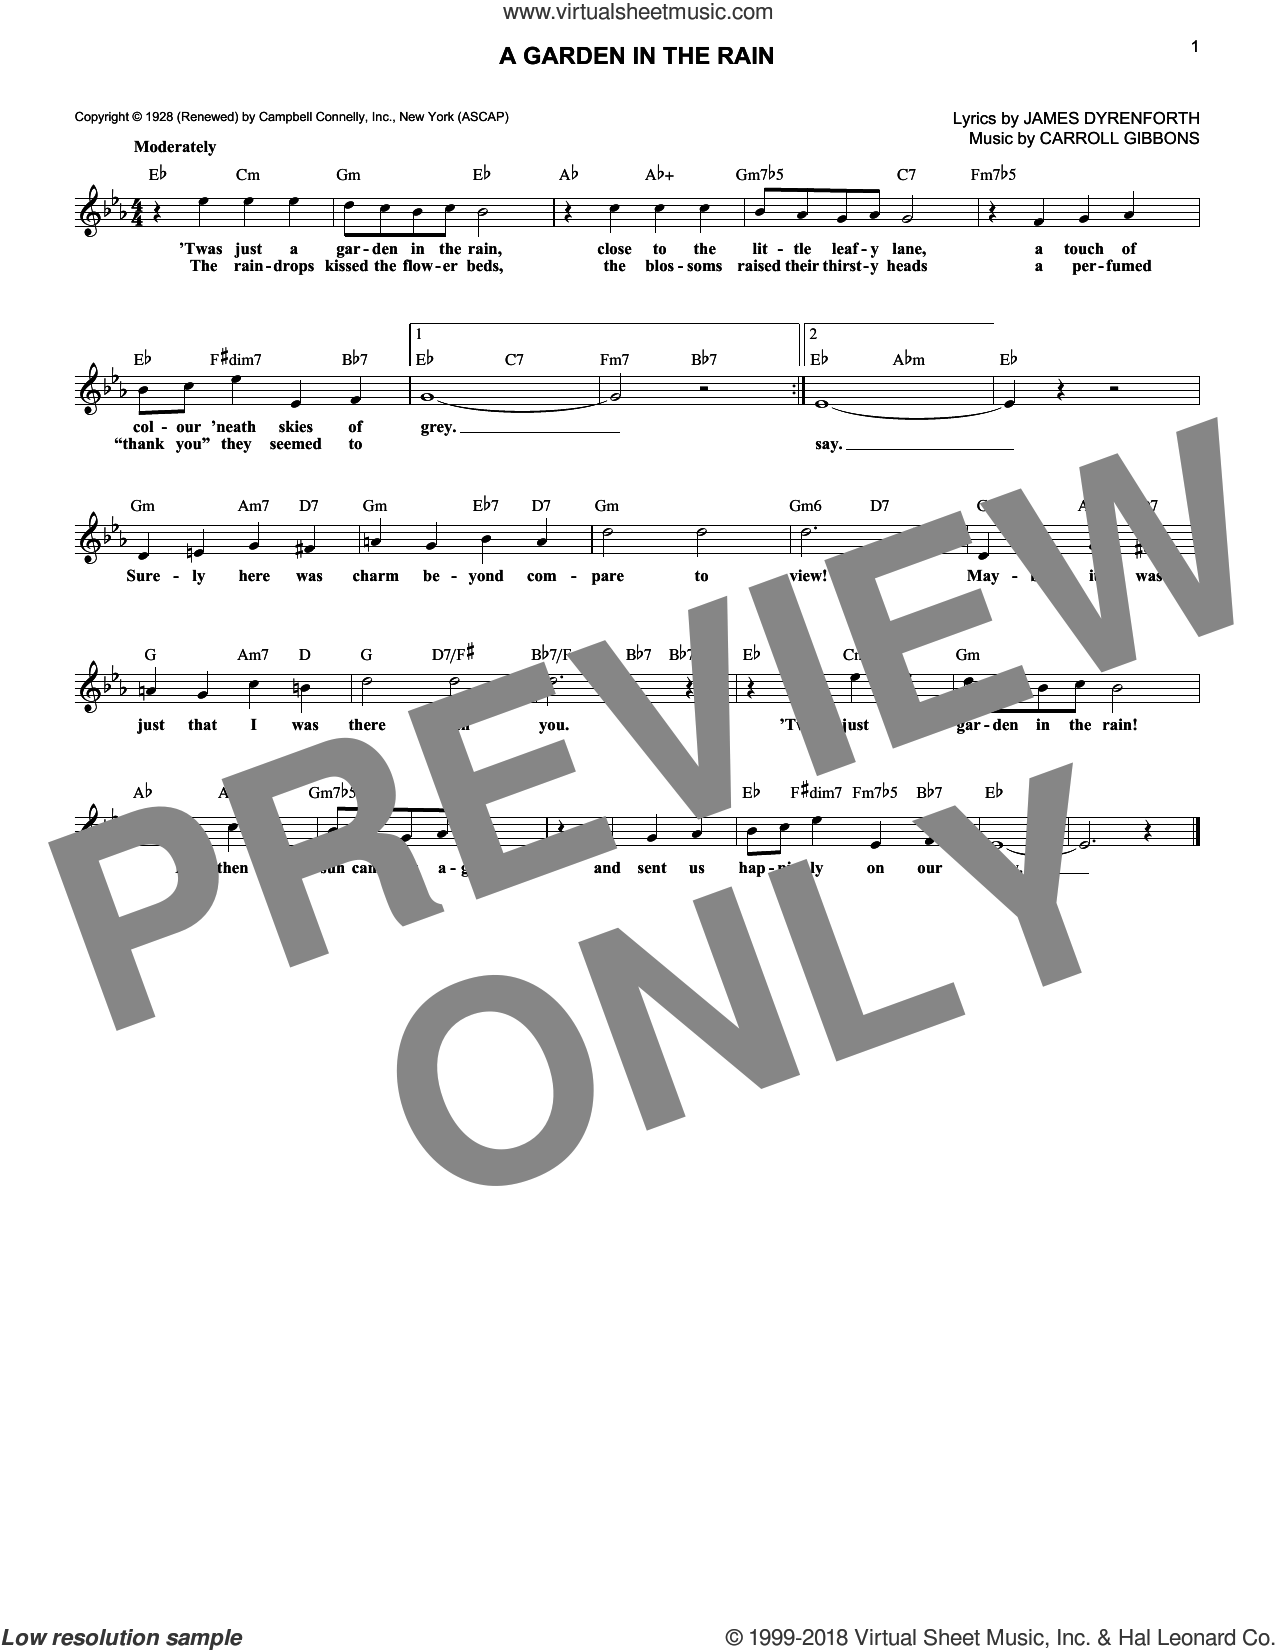 A Garden In The Rain sheet music for voice and other instruments (fake book) by Carroll Gibbons and James Dyrenforth, intermediate skill level